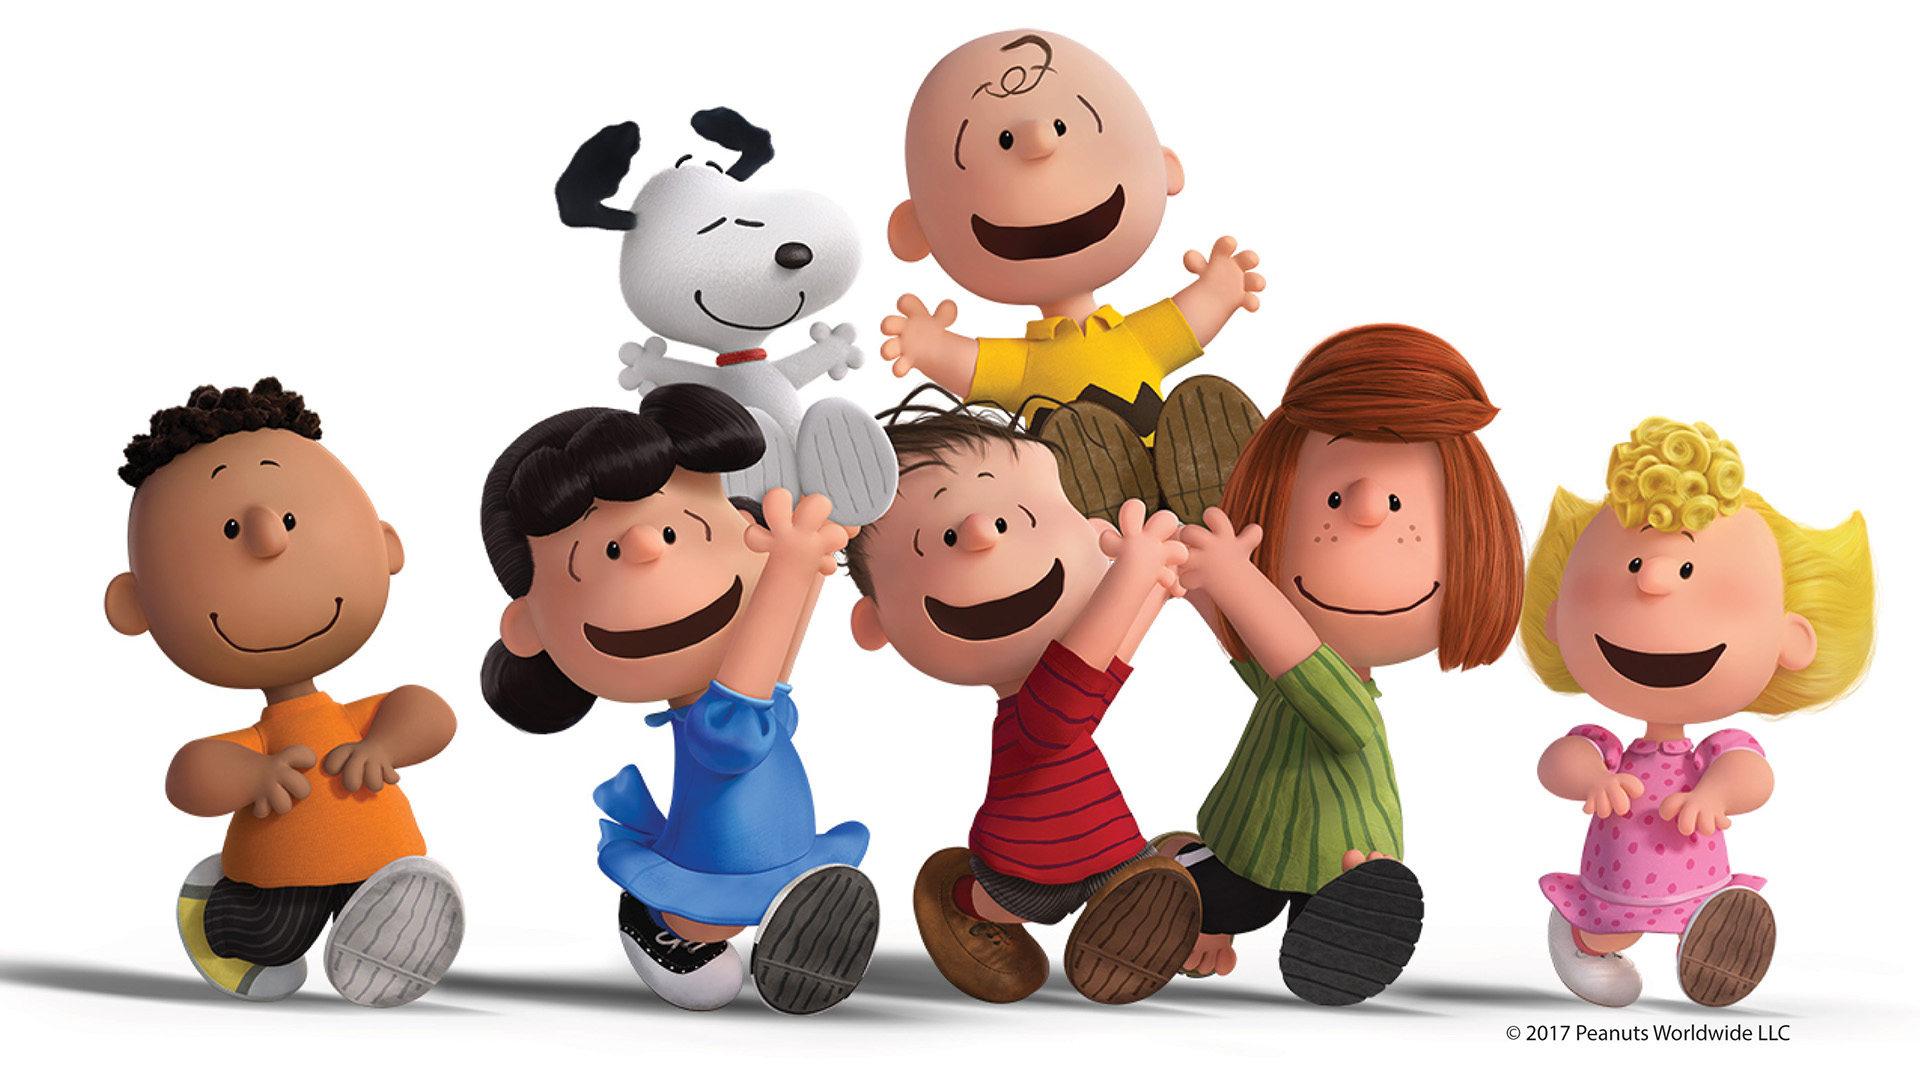 Apple to bring Charlie Brown and the Peanuts to its.